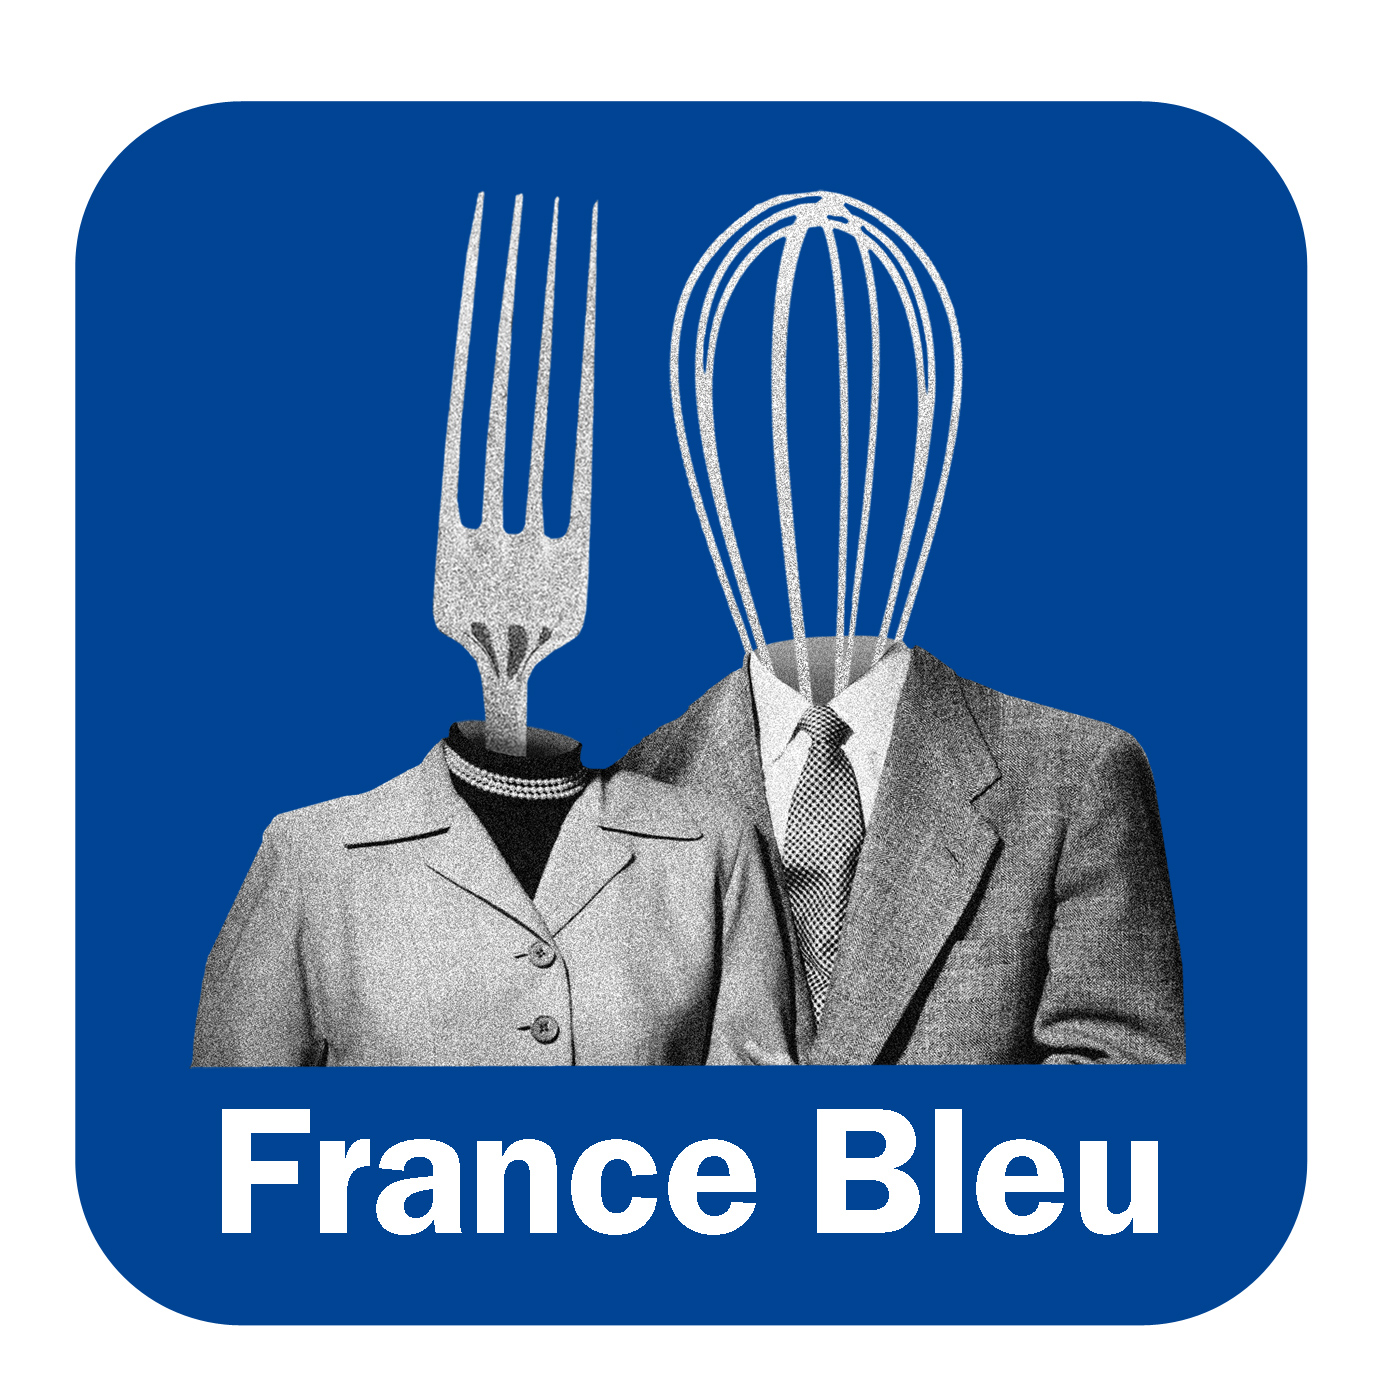 On cuisine ensemble France Bleu Belfort-Montbéliar